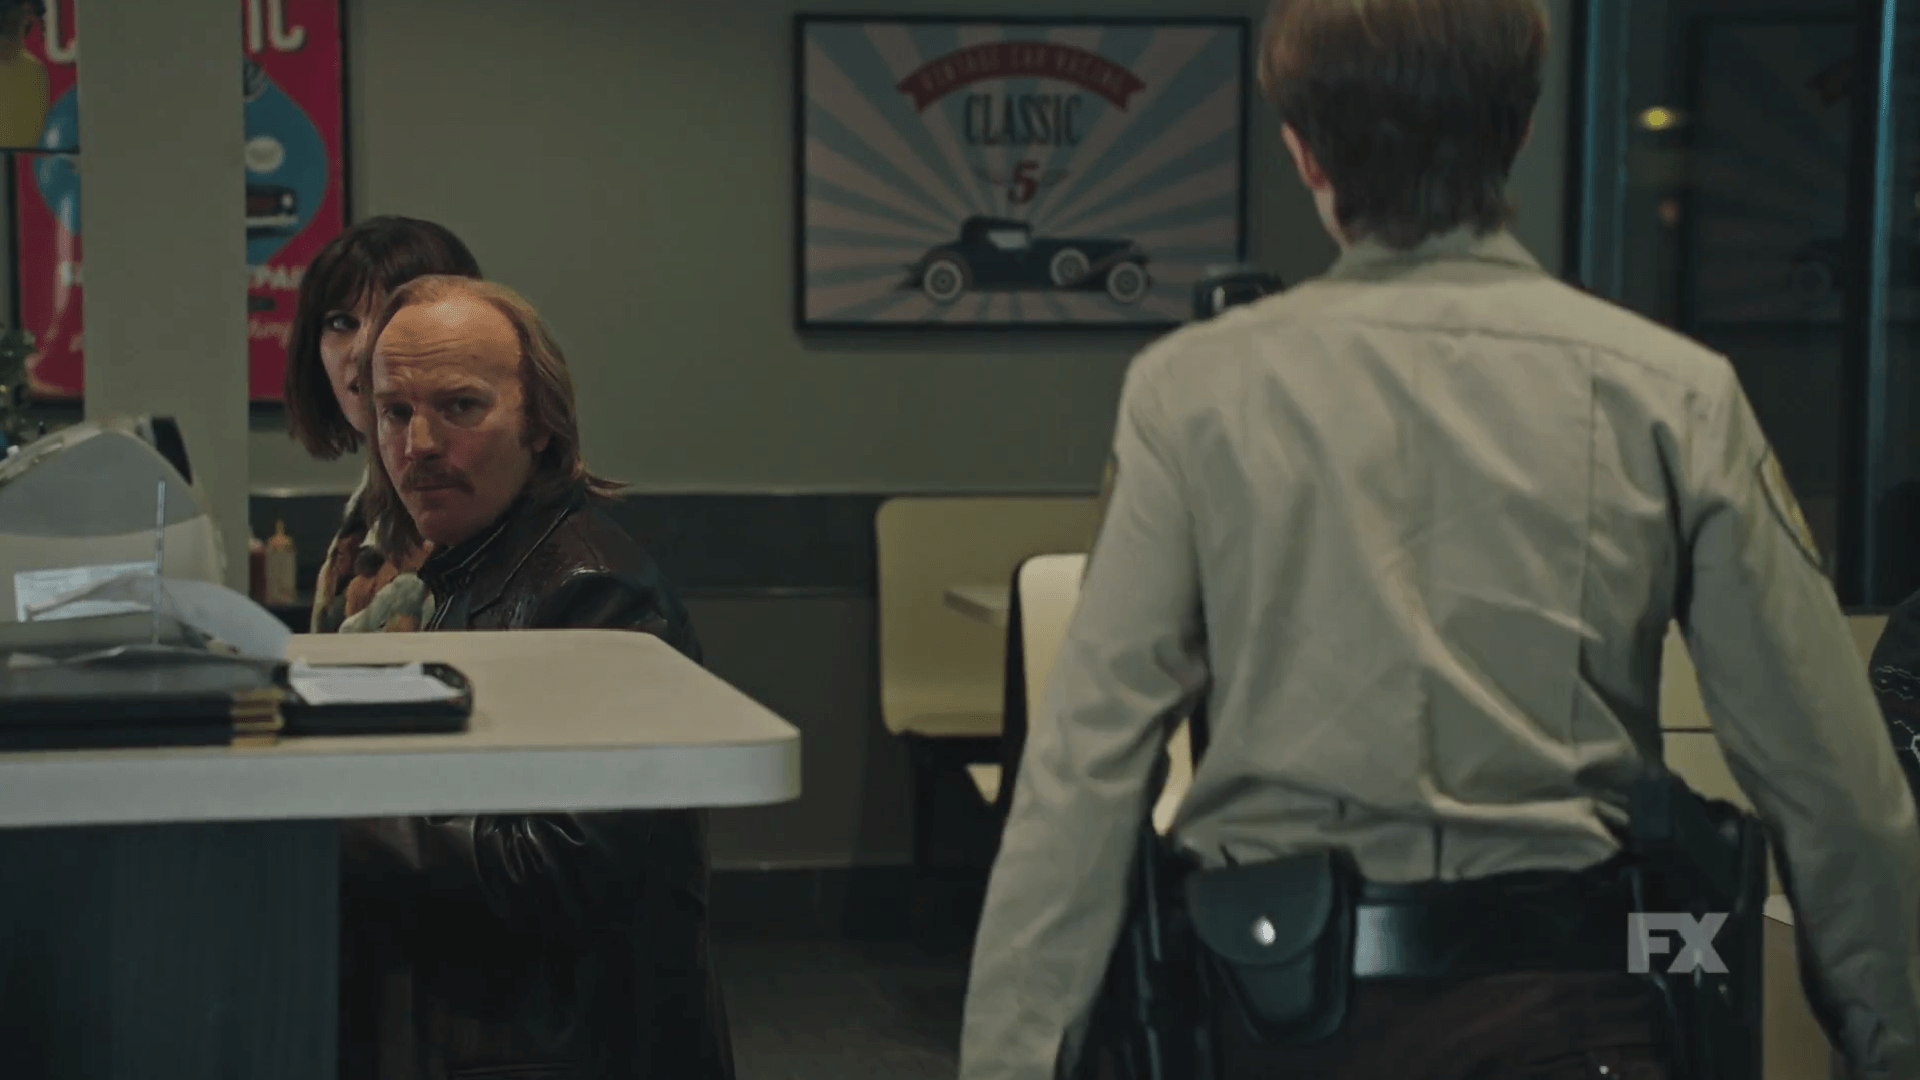 New 'Fargo' Season 3 Teaser Finally Reveals Bald, Pot-Bellied Ewan McGregor